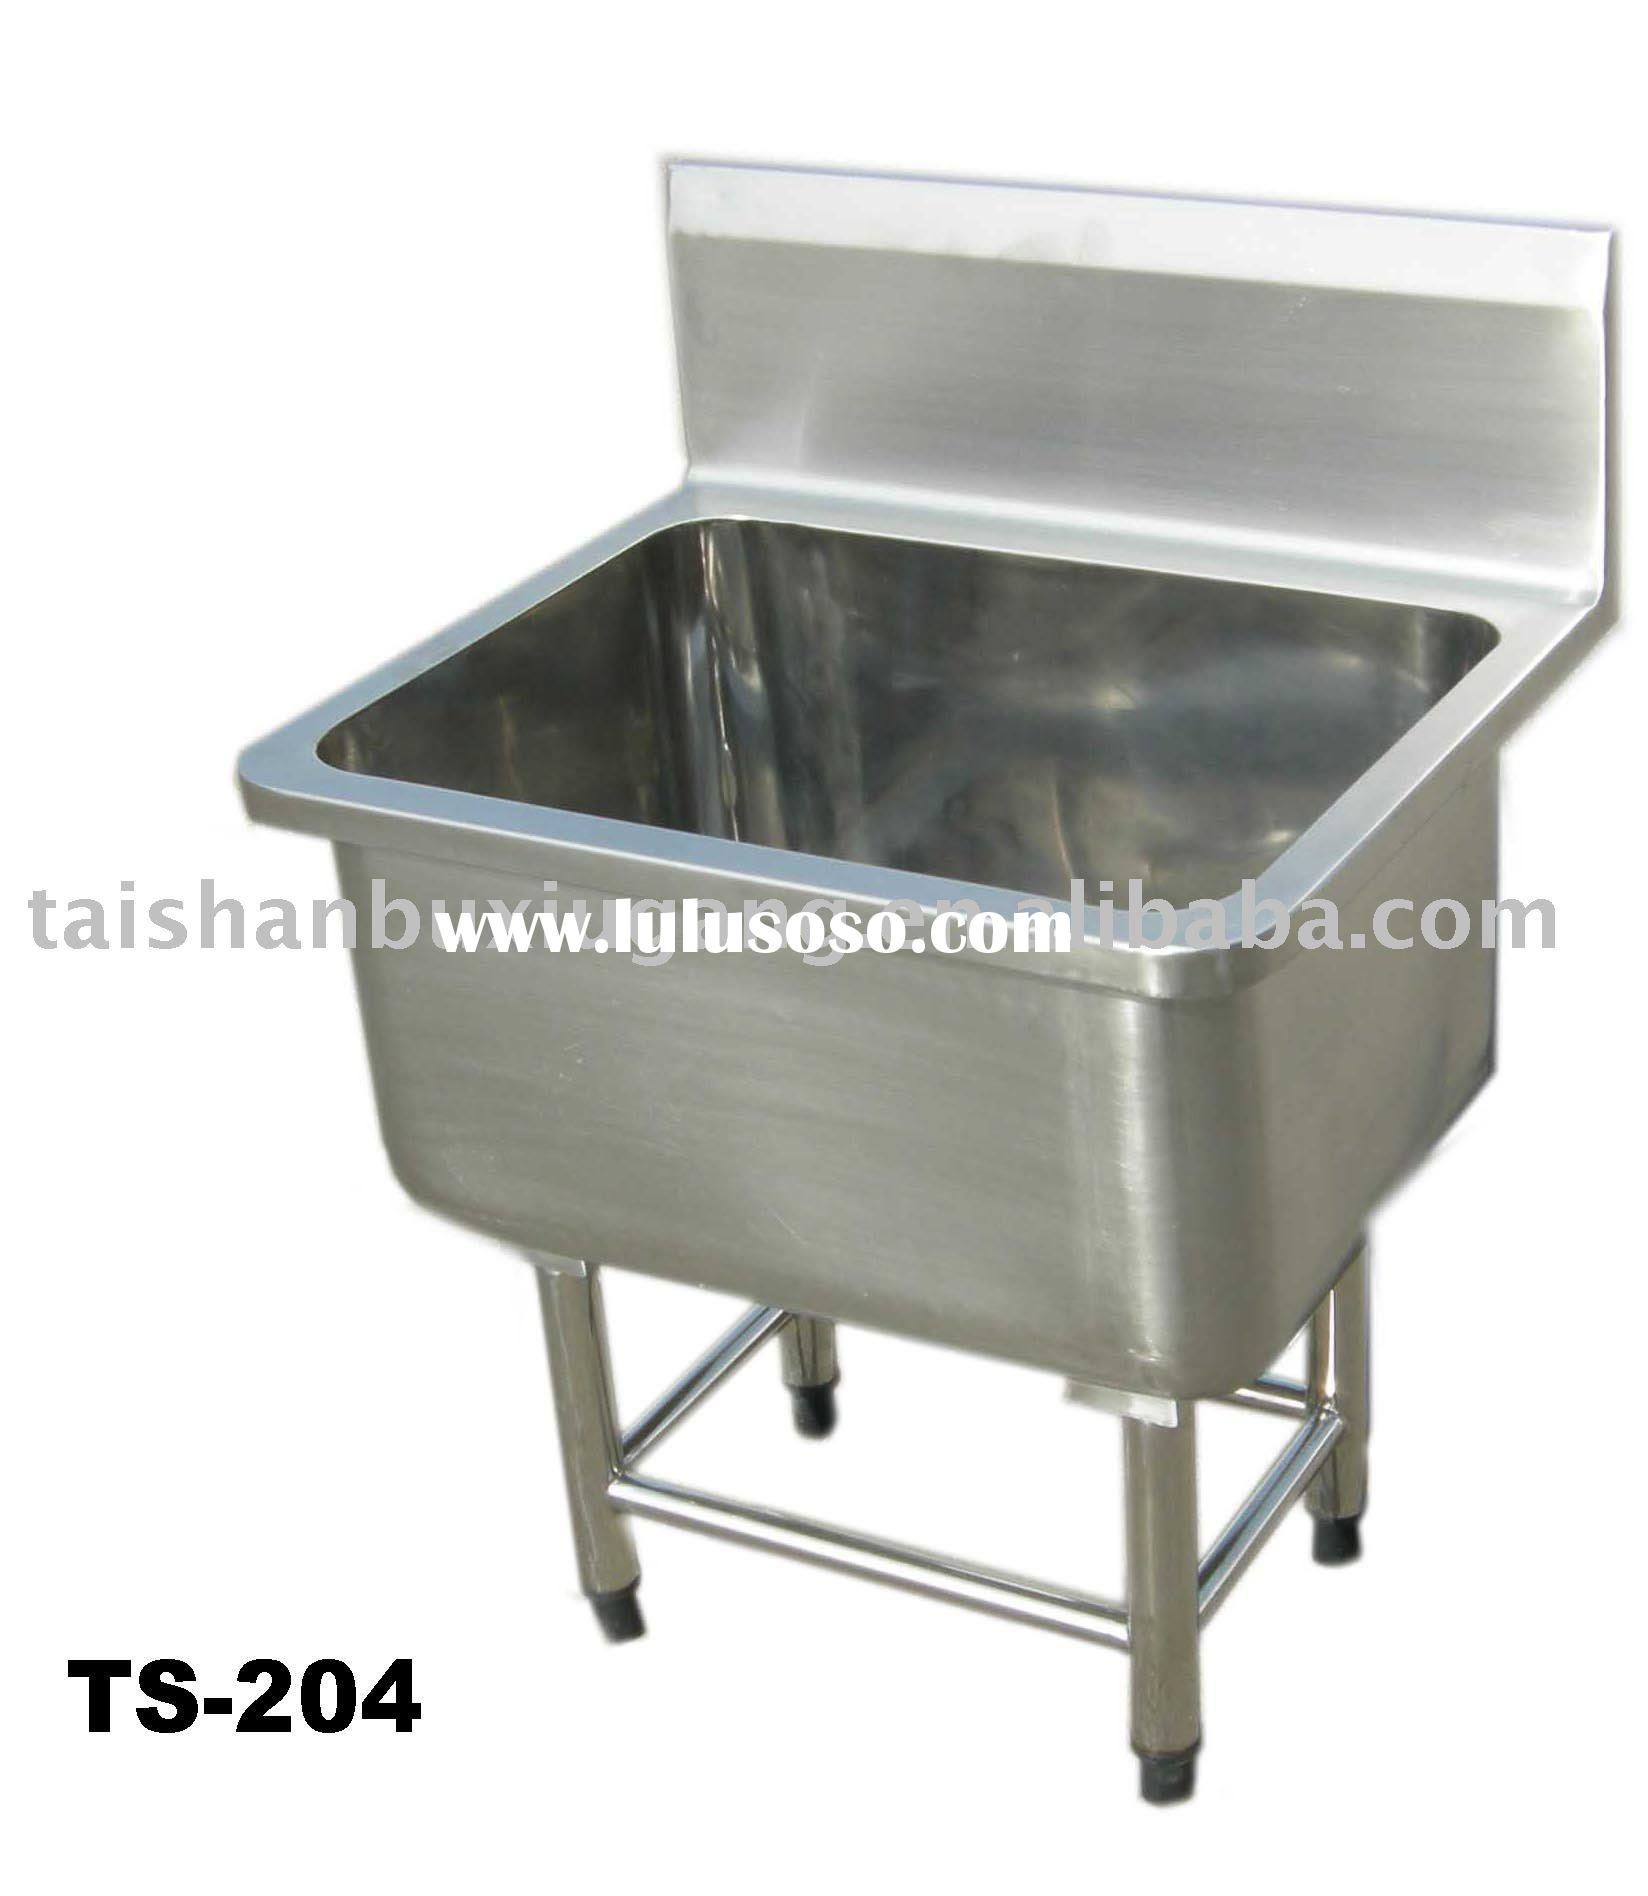 Mop Sink Stainless Steel : stainless steel mop sink, stainless steel mop sink Manufacturers in ...